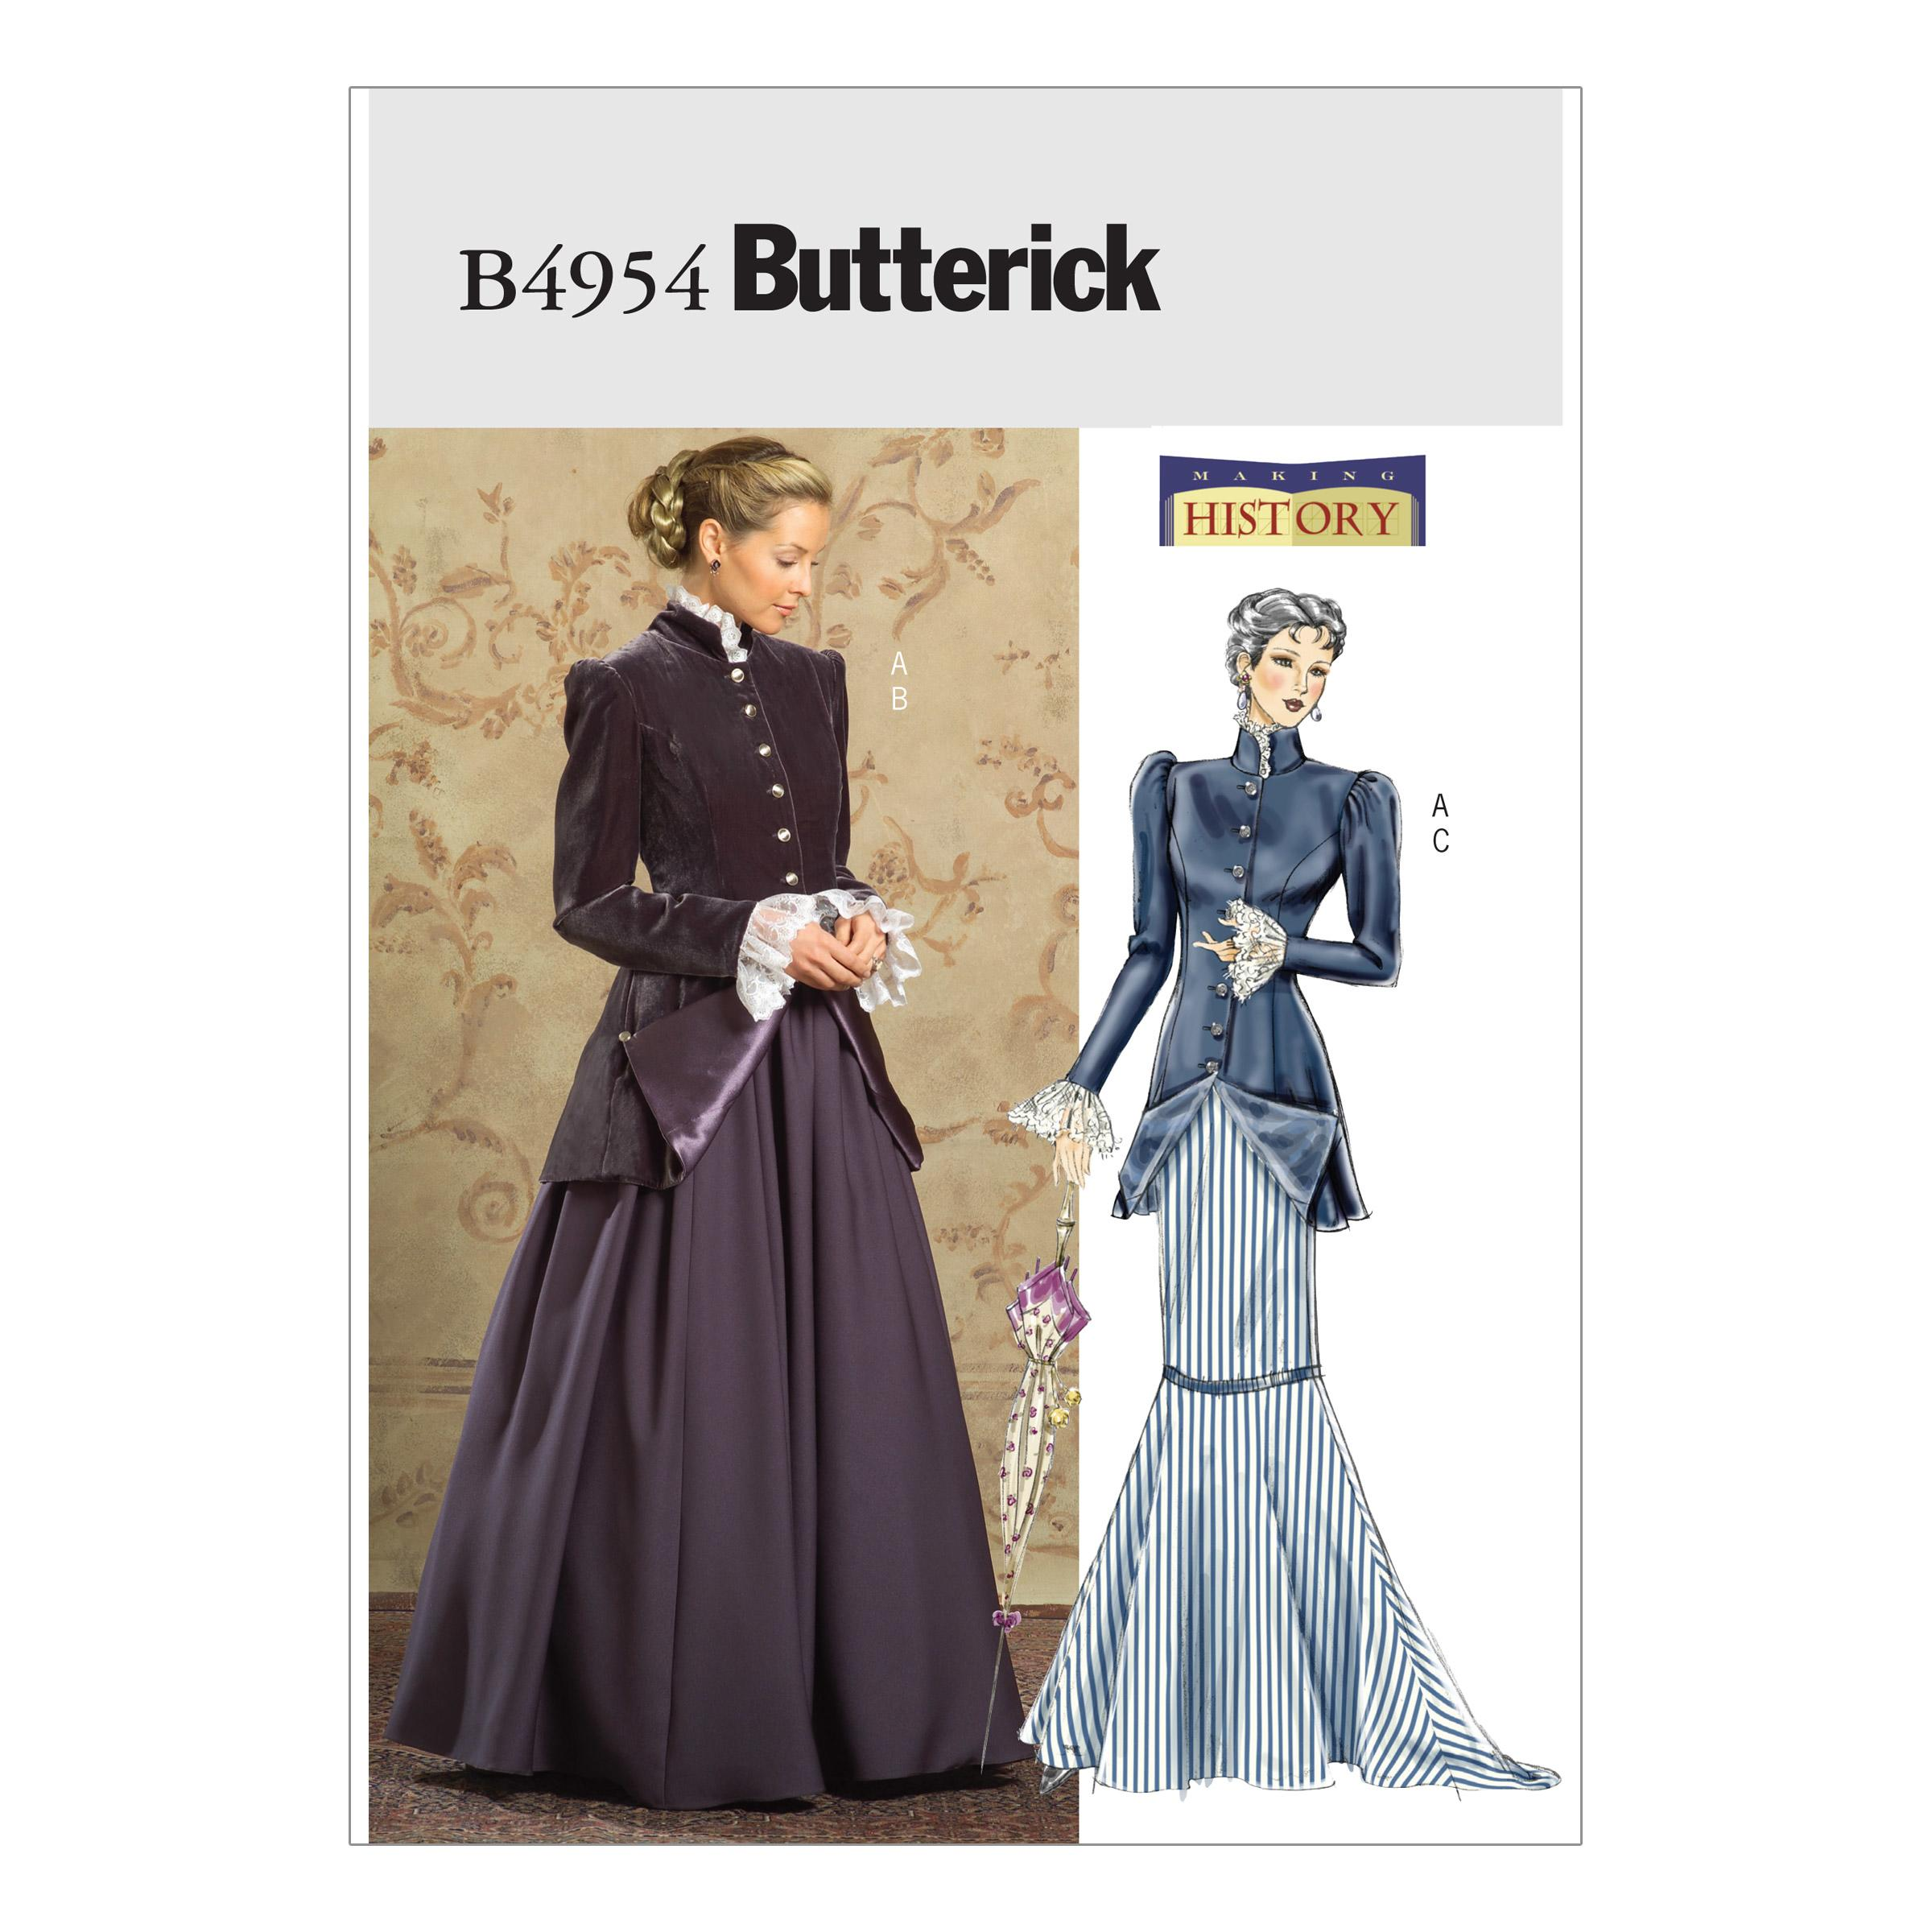 Butterick B4954 Misses'/Misses' Petite Early 20th Century Costume